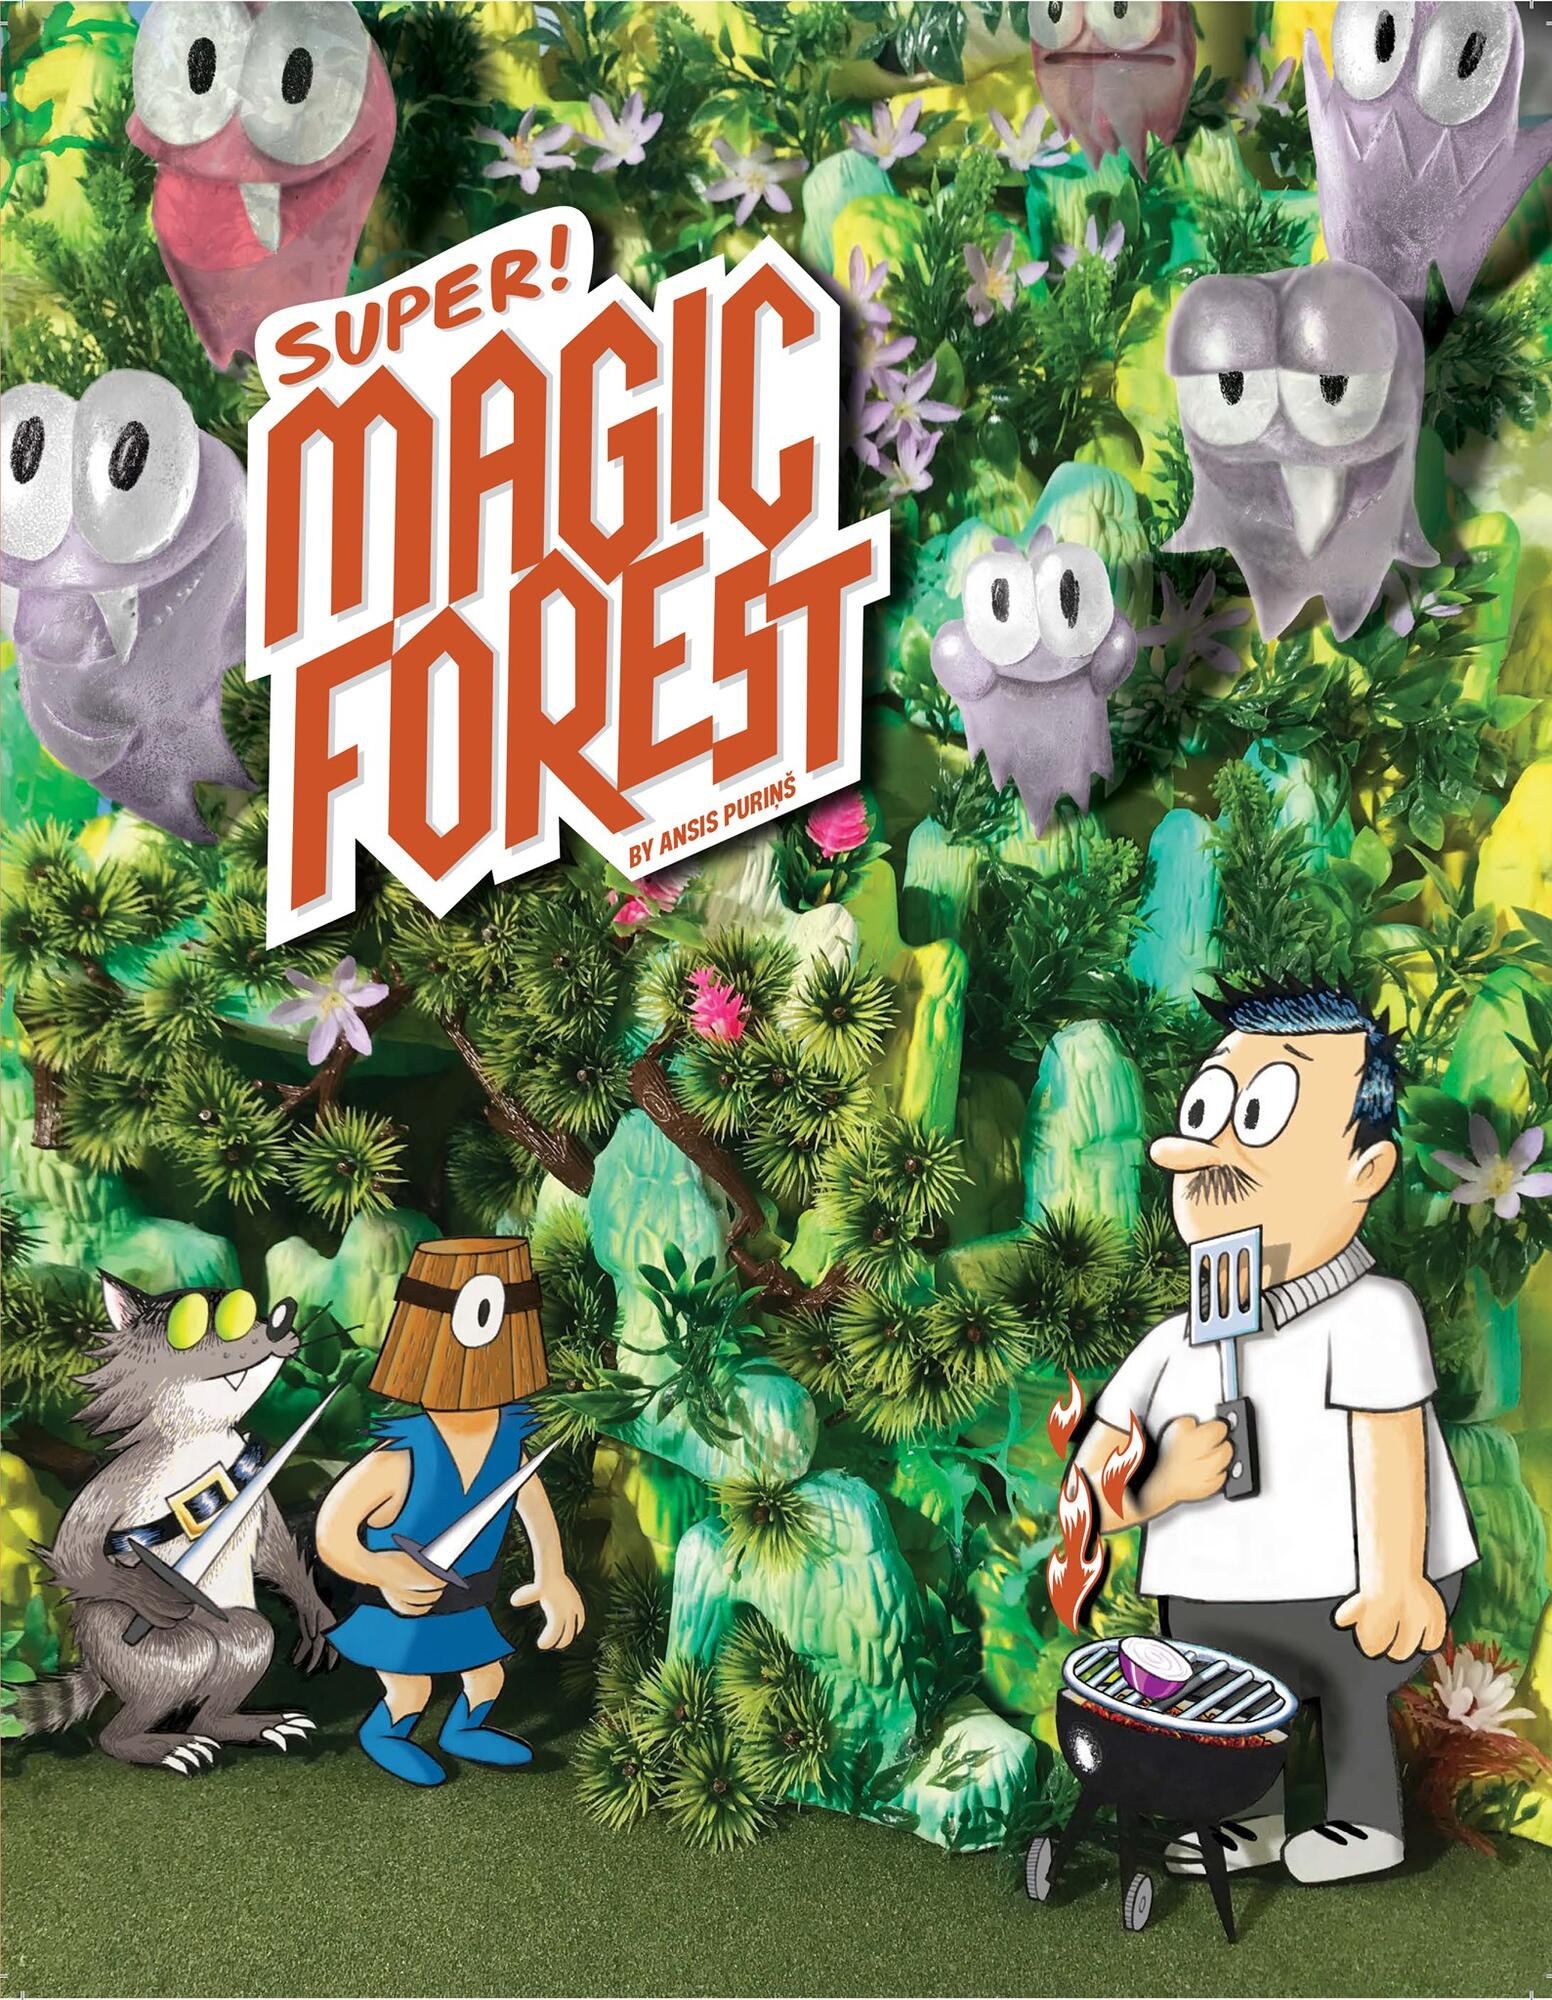 Image of the cover of the Super Magic Forest by Ansis Purins